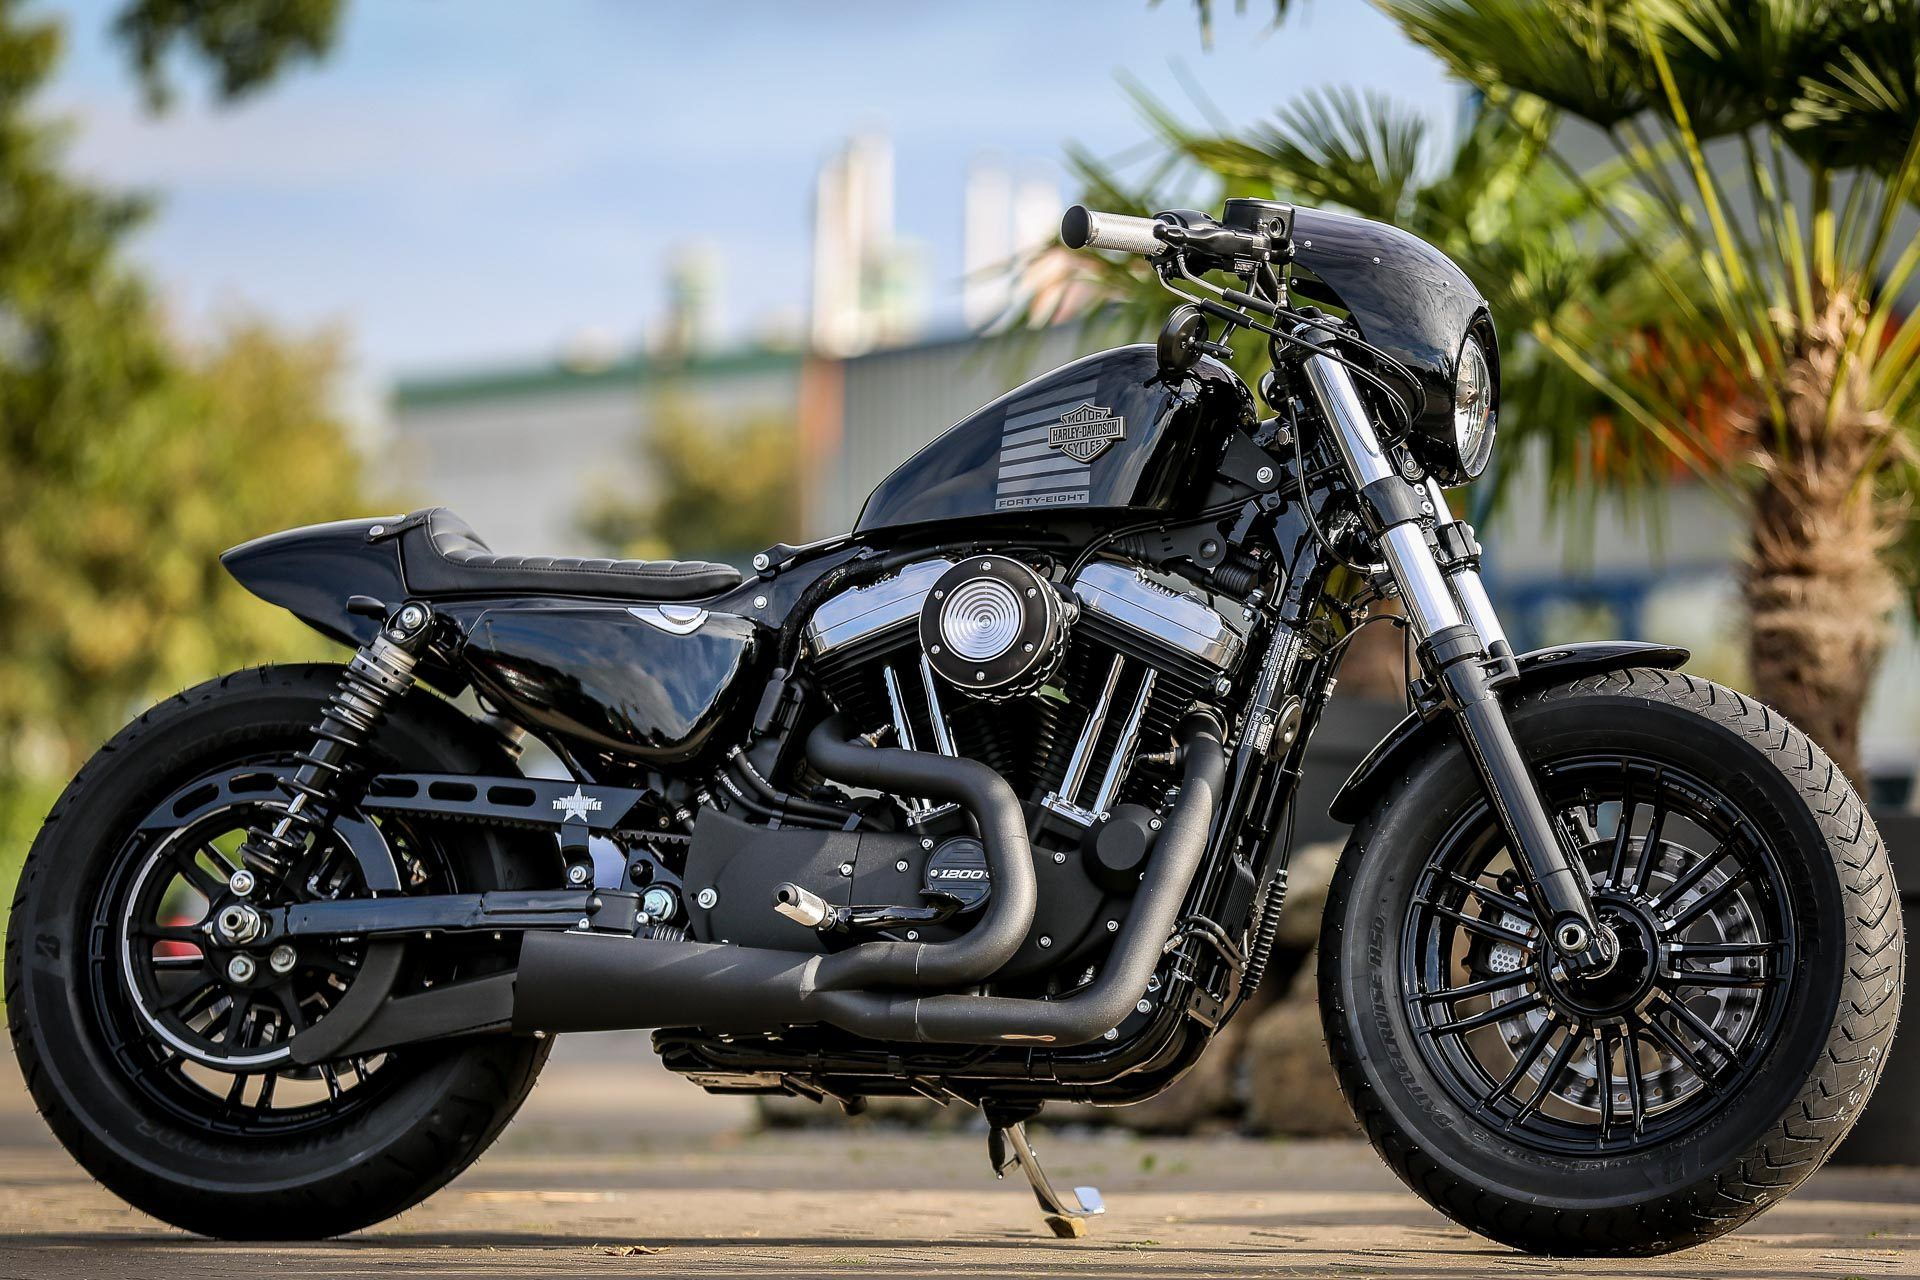 Harley Davidson Forty Eight Custom Black 2k16 Harley Davidson Sportster Harley Roadster Harley Davidson Pictures